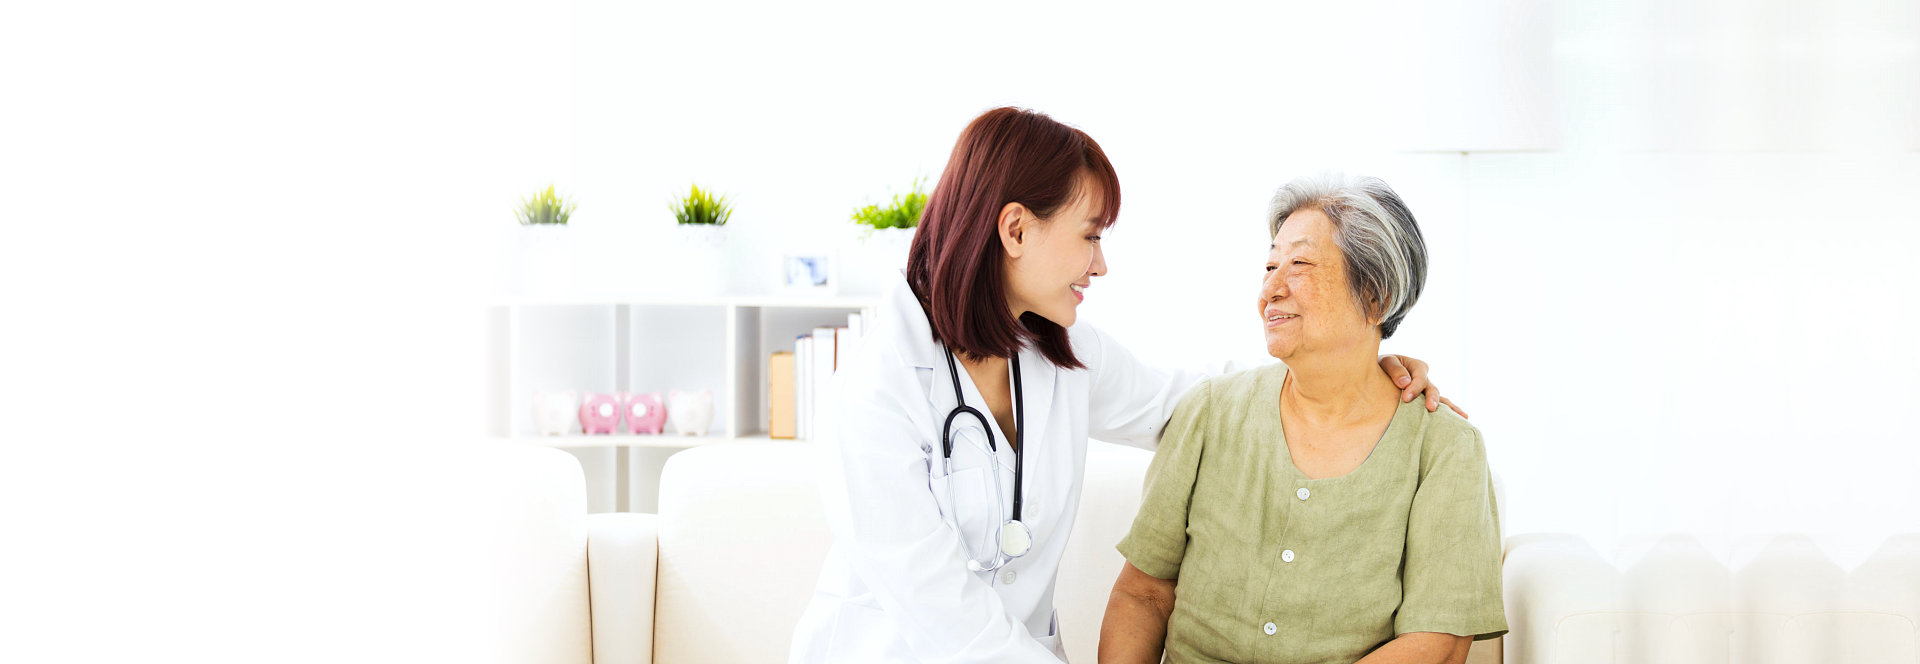 nurse and patient looking at each other